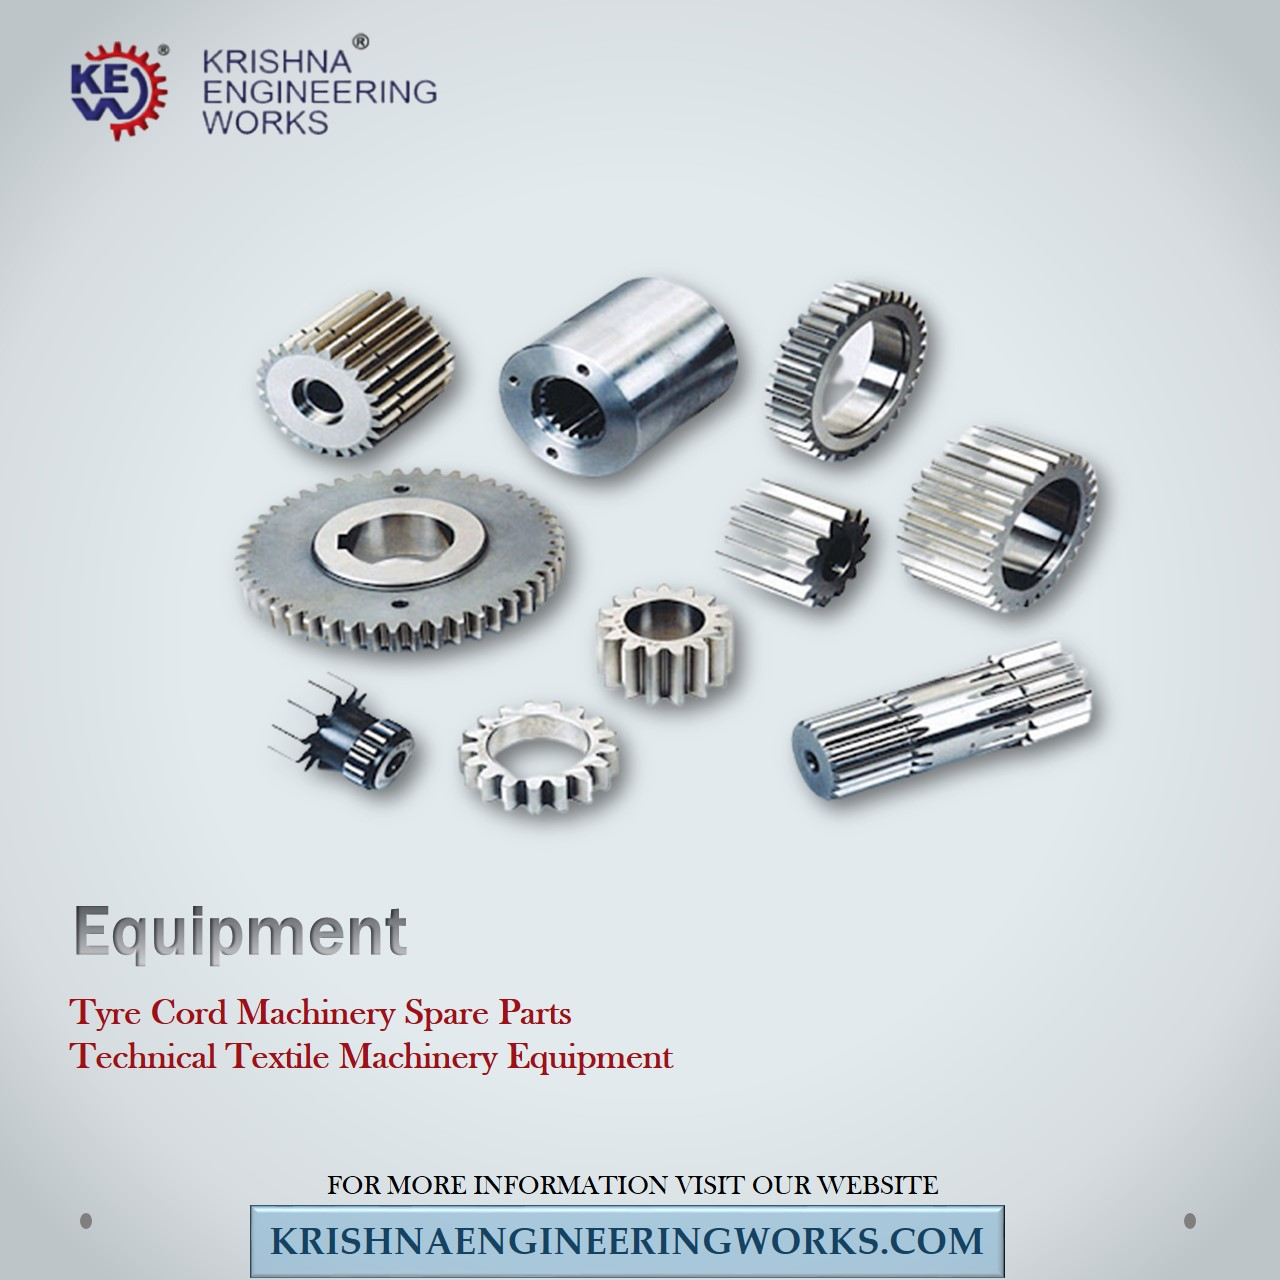 Manufacturer of Tyre Cord Machinery Spare Parts